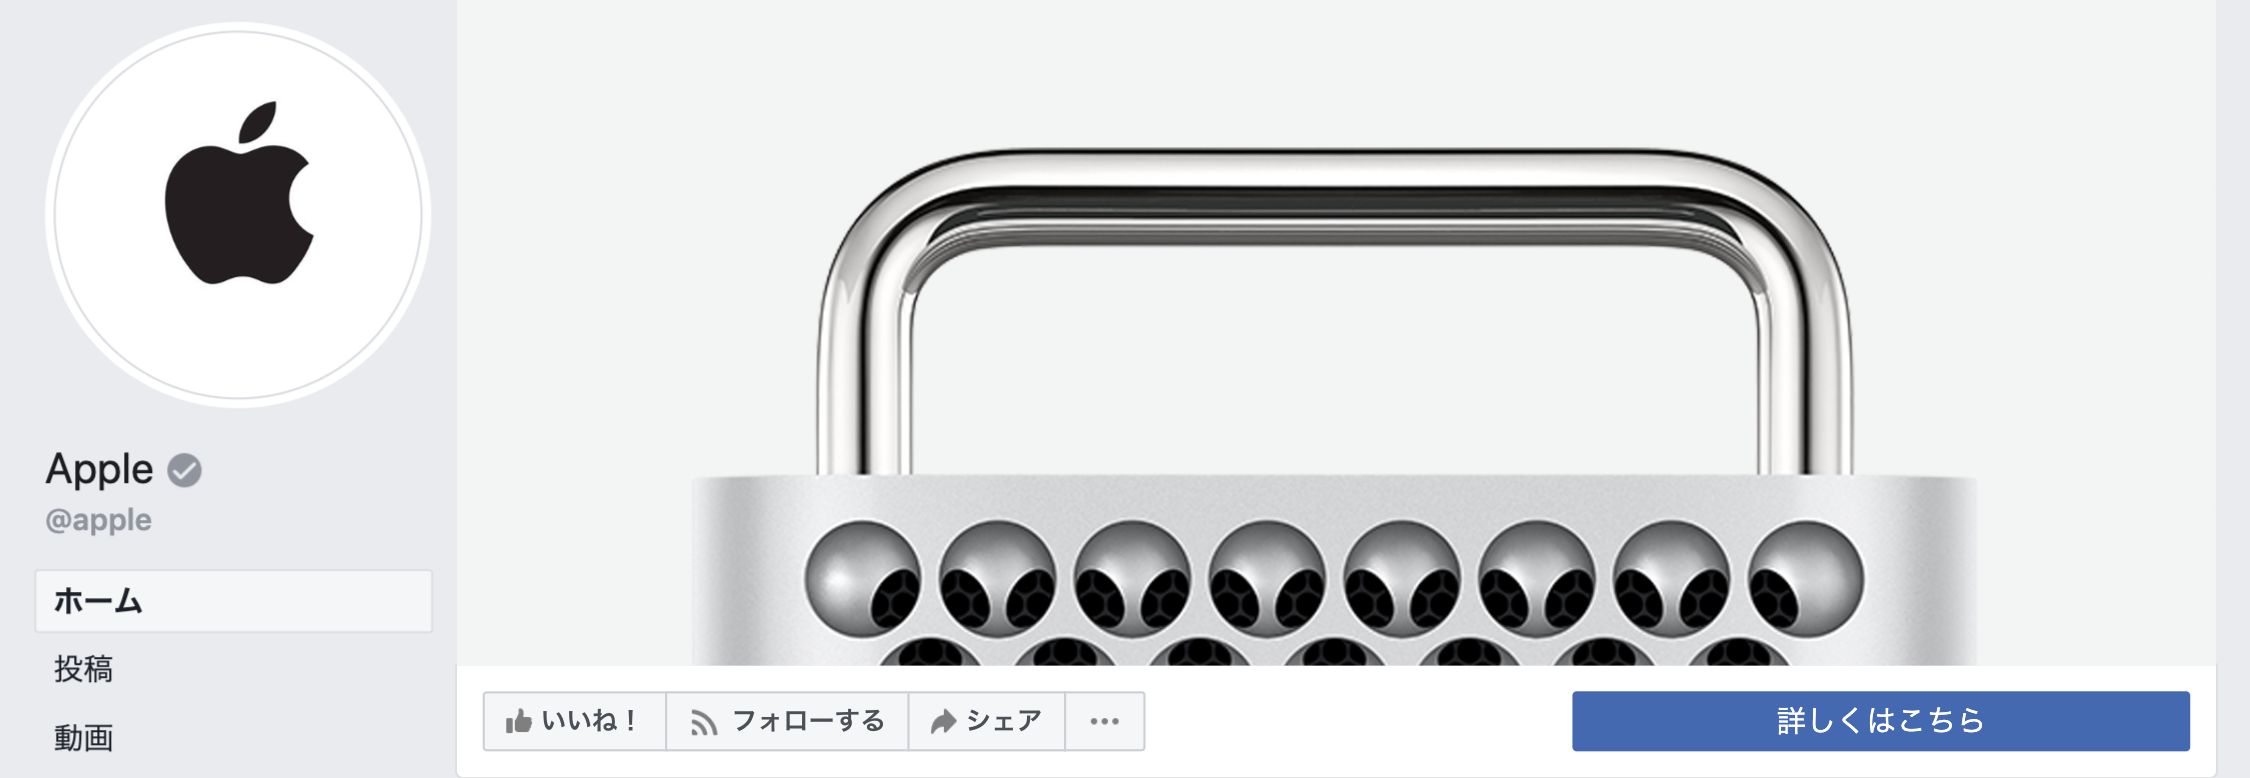 Apple Facebookページ